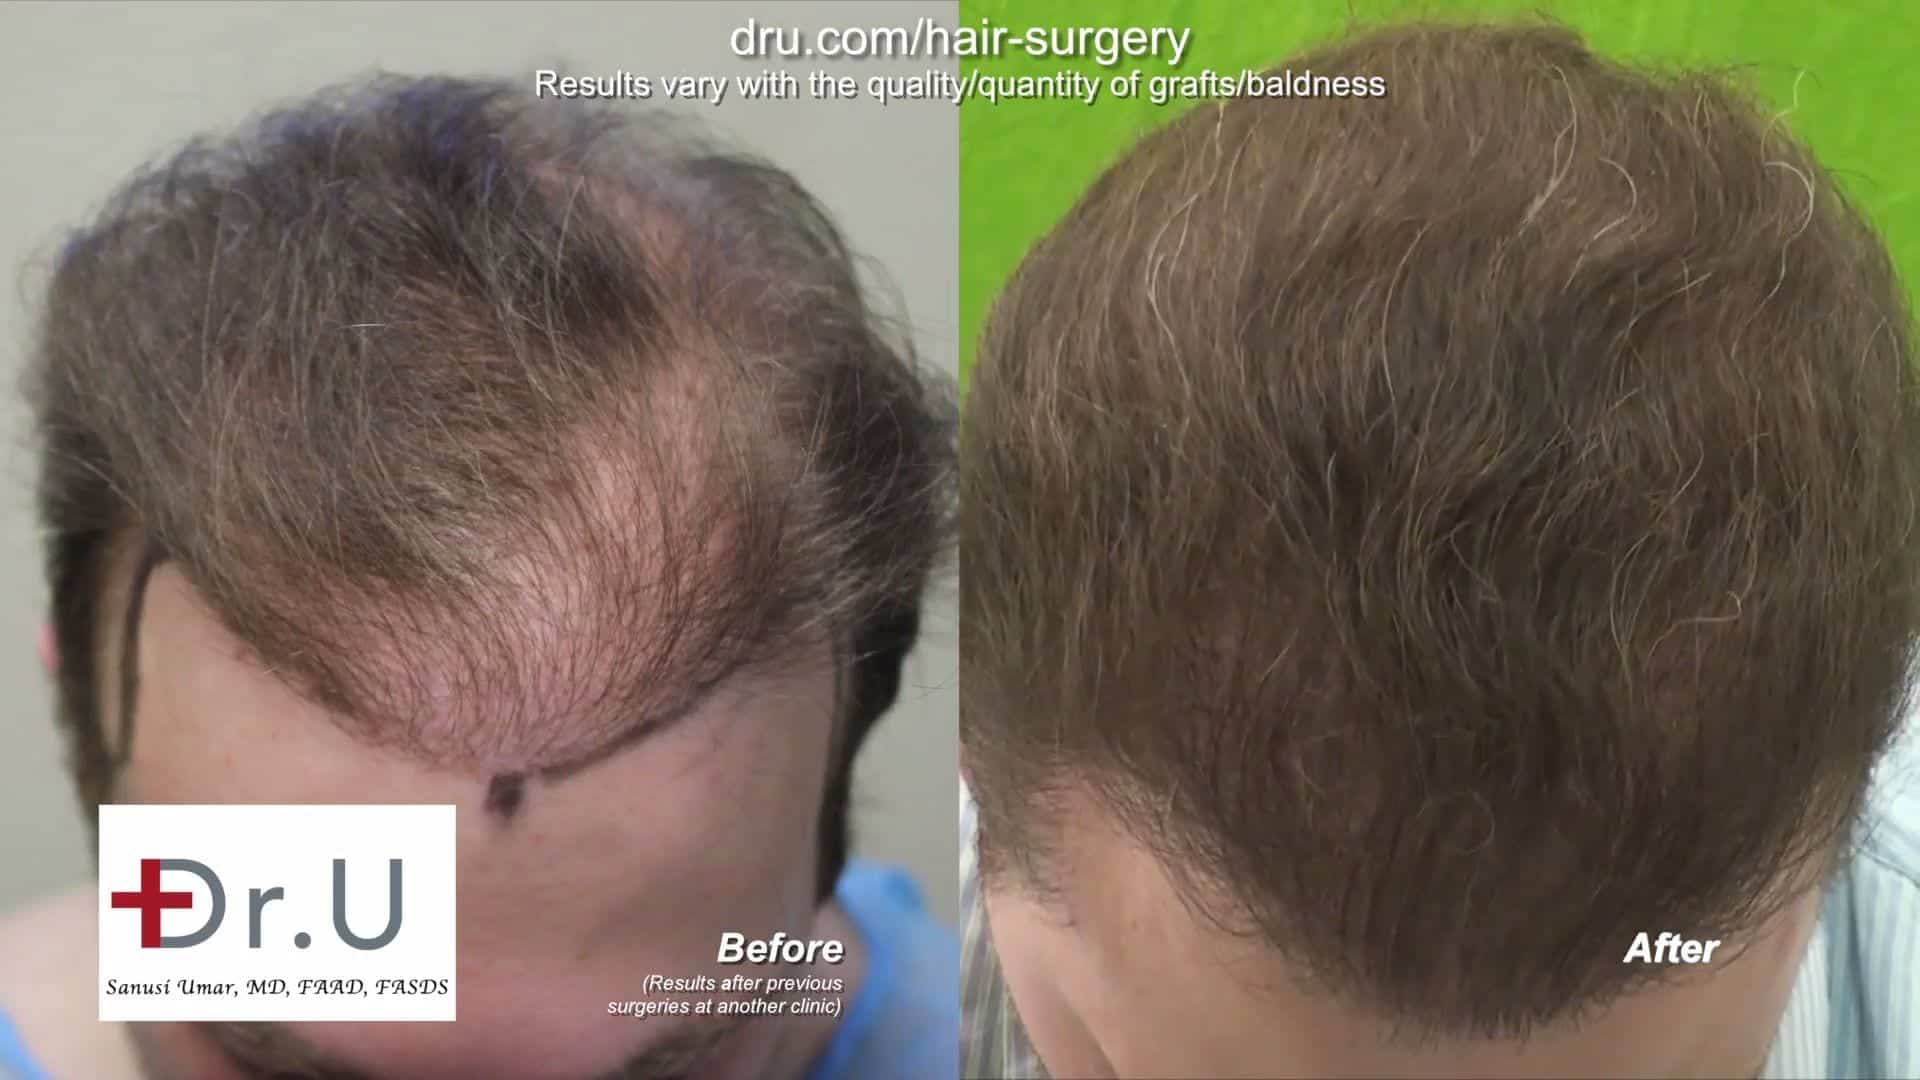 DrUGraft body hair FUE Restores donor depleted bald patient: Patient after treatment from Dr. Umar